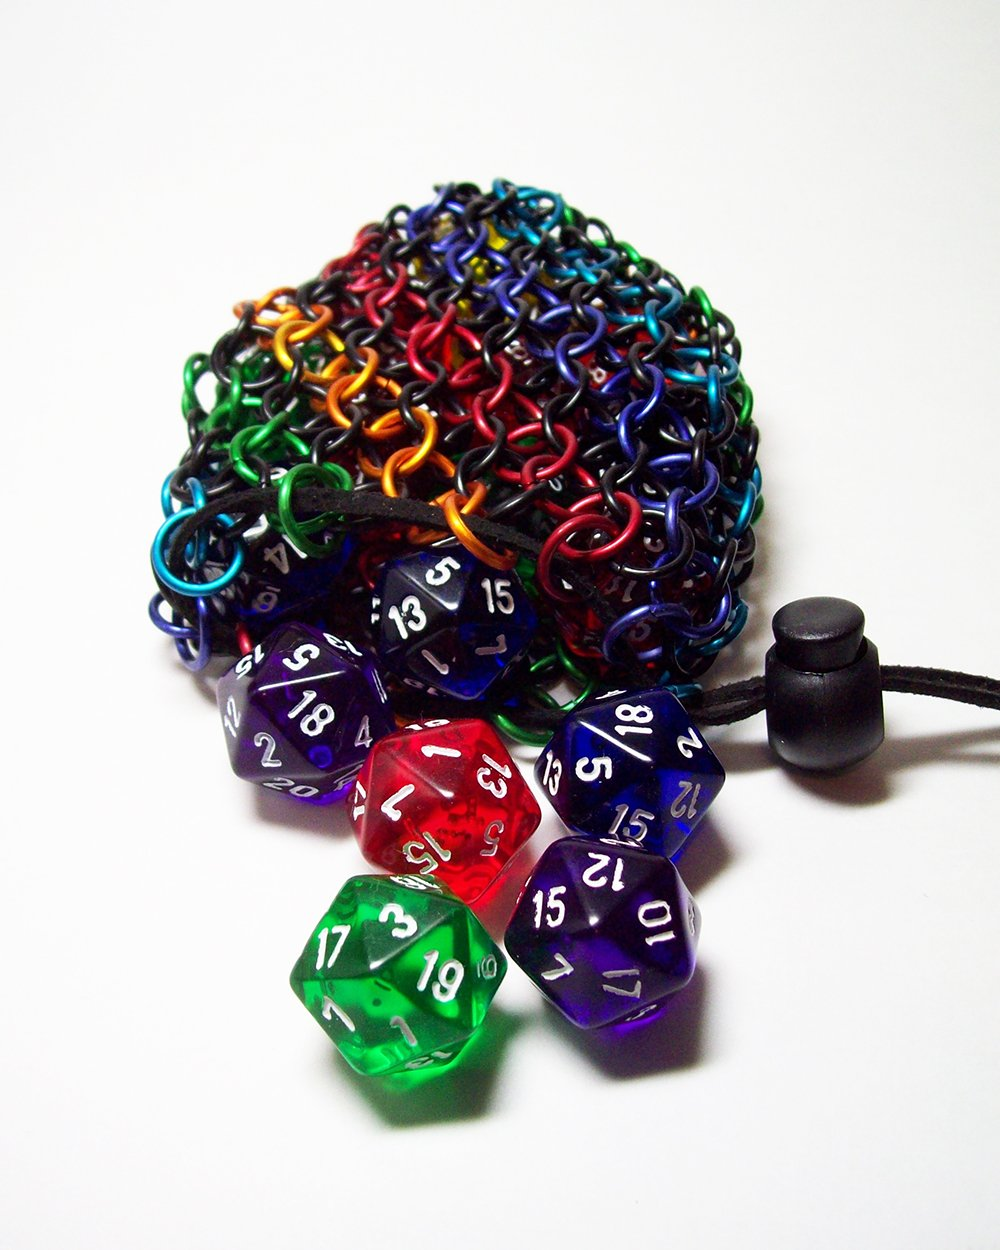 dicebag, dice bag, dice pouch, coin pouch, chainmaille, chainmail, chainmaill dice bag